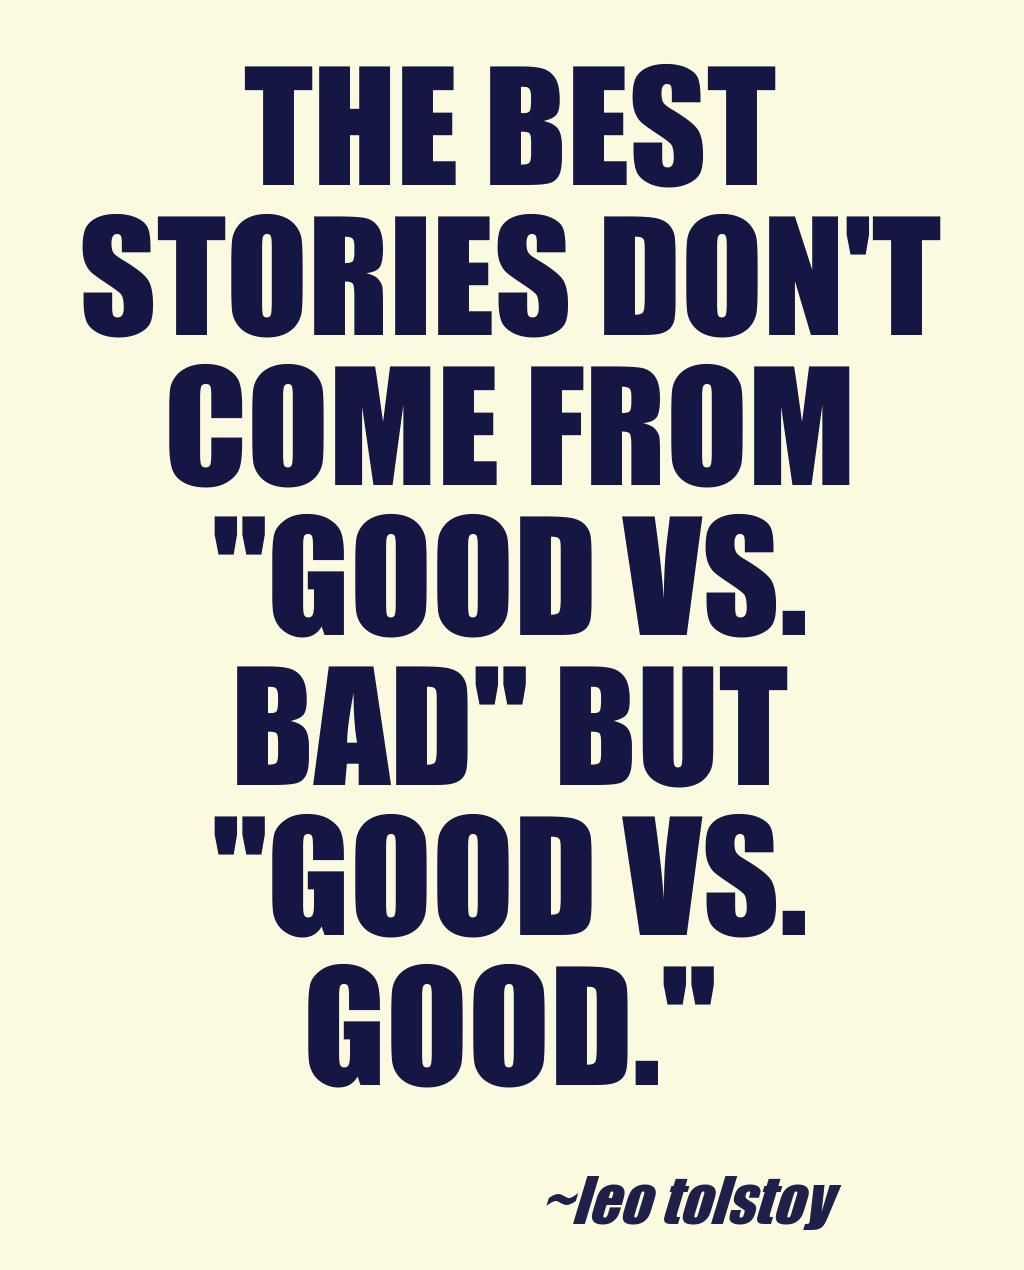 The best stories dont come from quotes authors writers